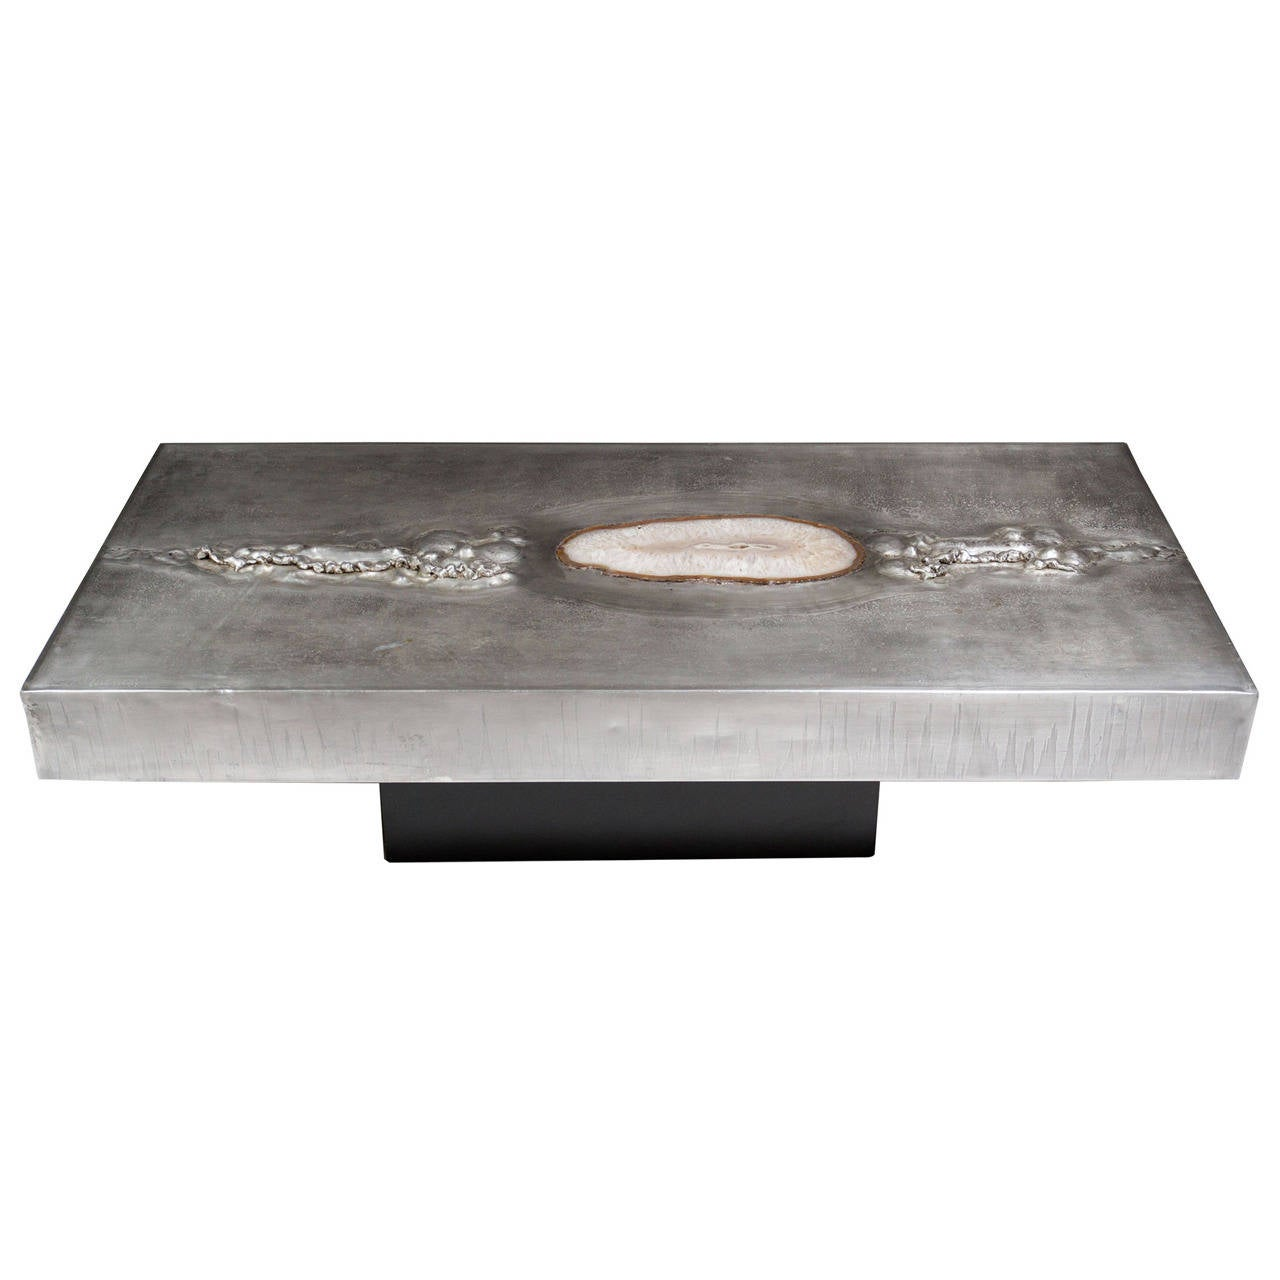 1970s belgian quartz inset textured aluminum coffee table